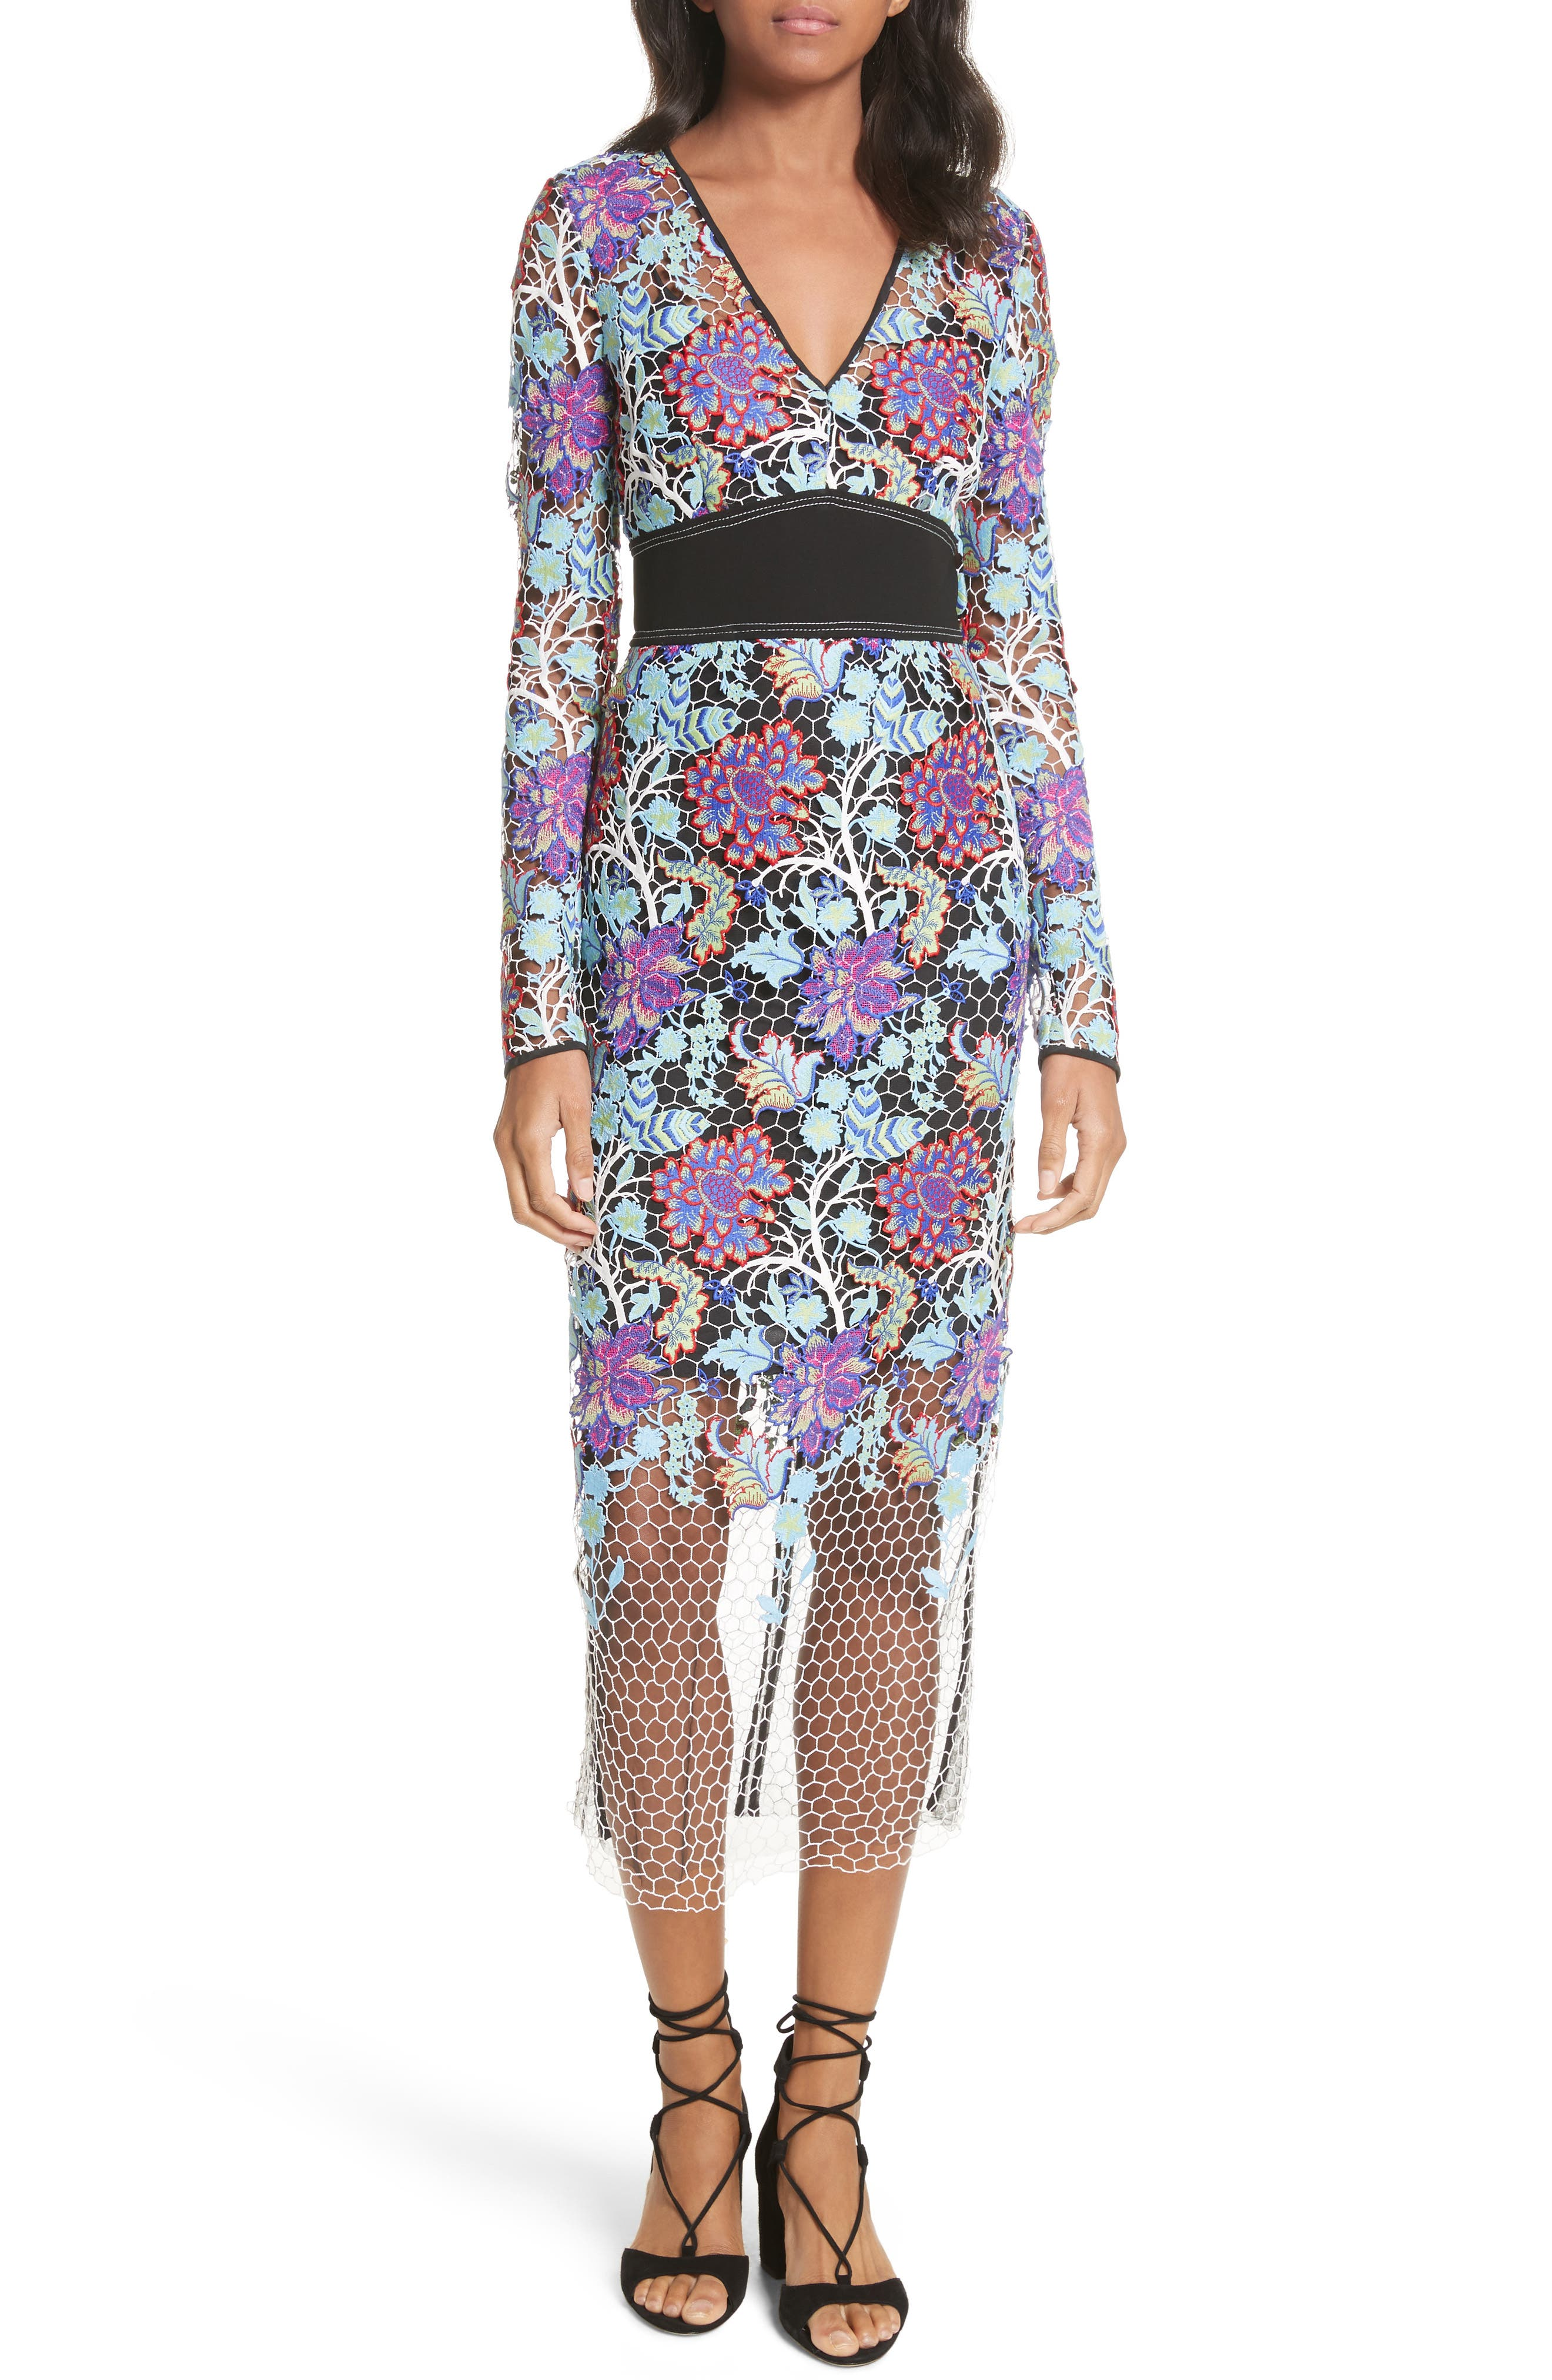 Banded Lace Overlay Dress,                         Main,                         color, Ivory Multi